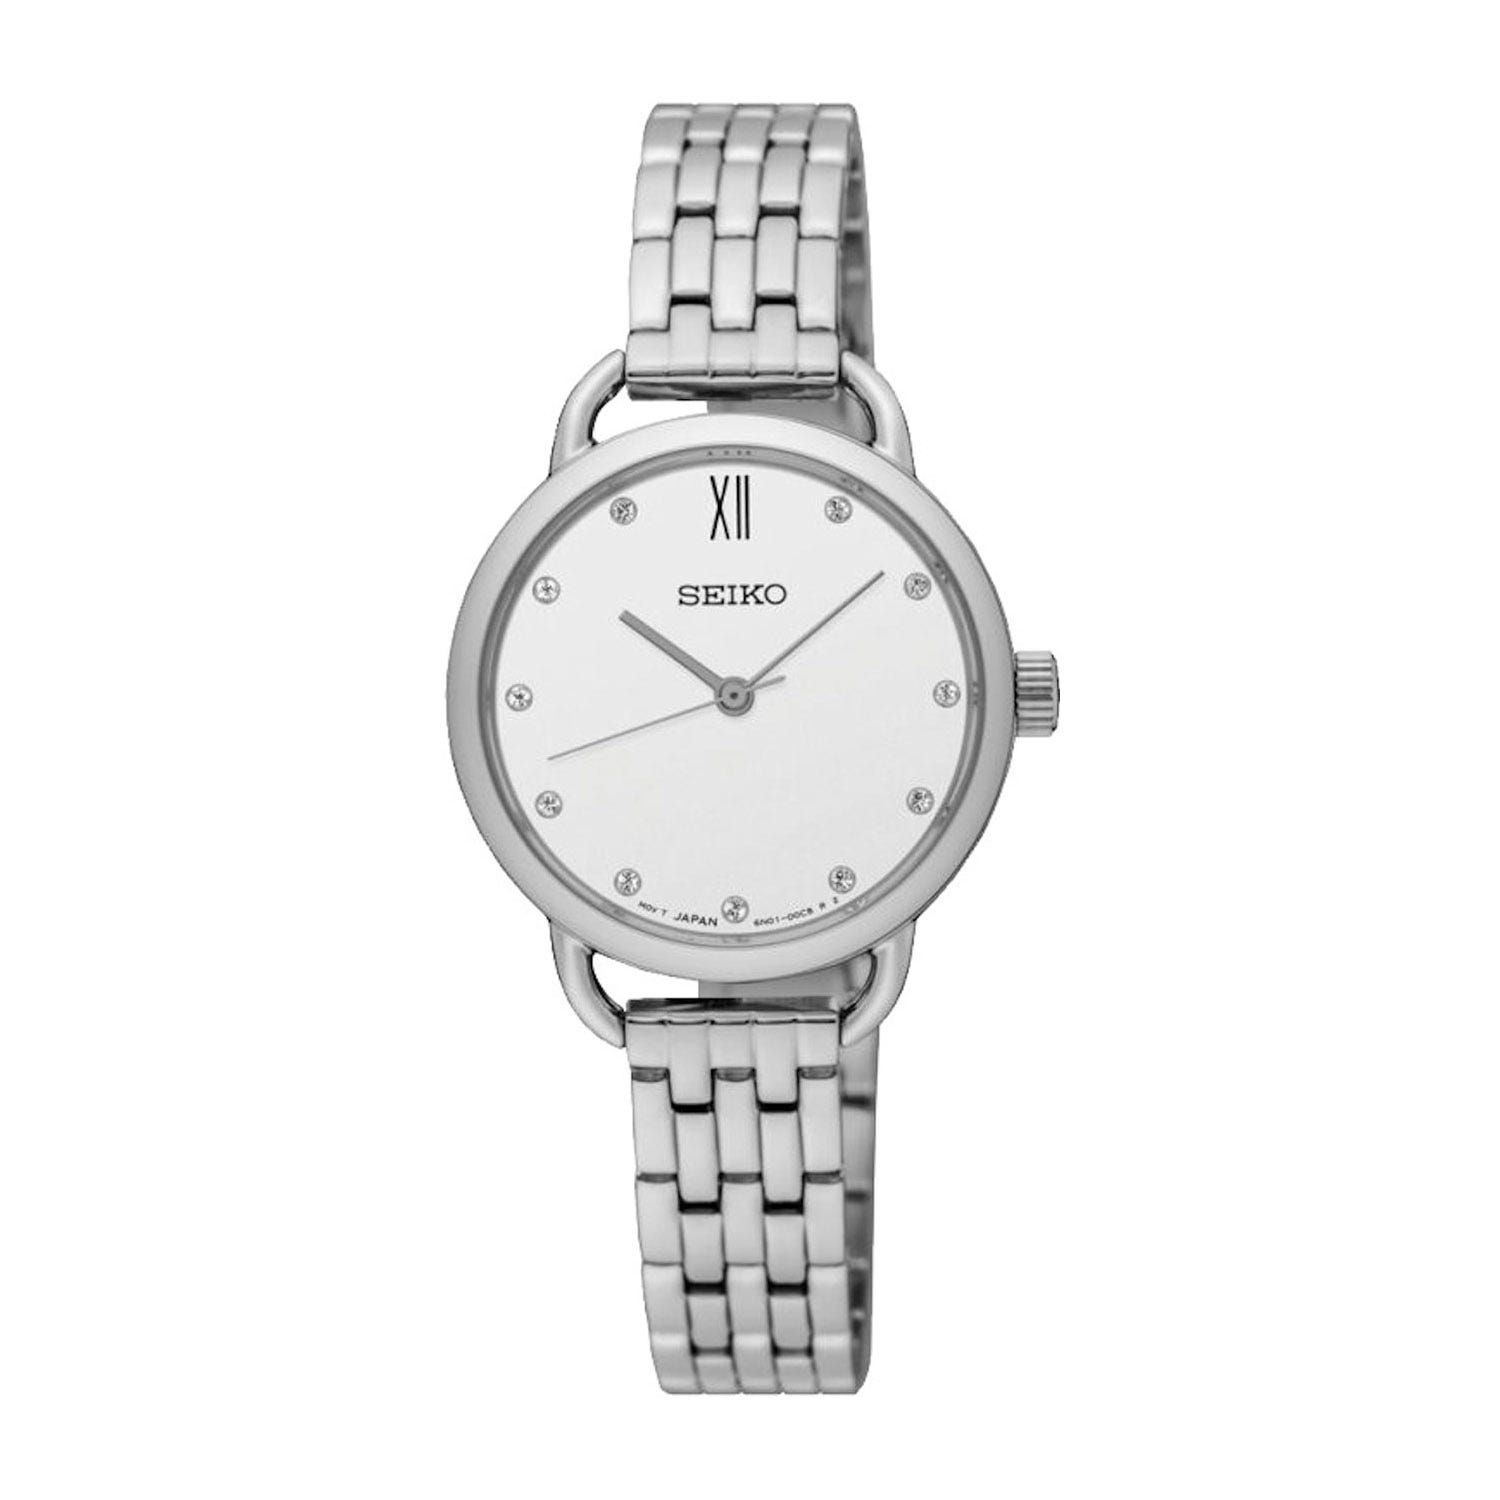 Seiko Recraft Swarovski Crystal Stainless Steel Ladies' Watch